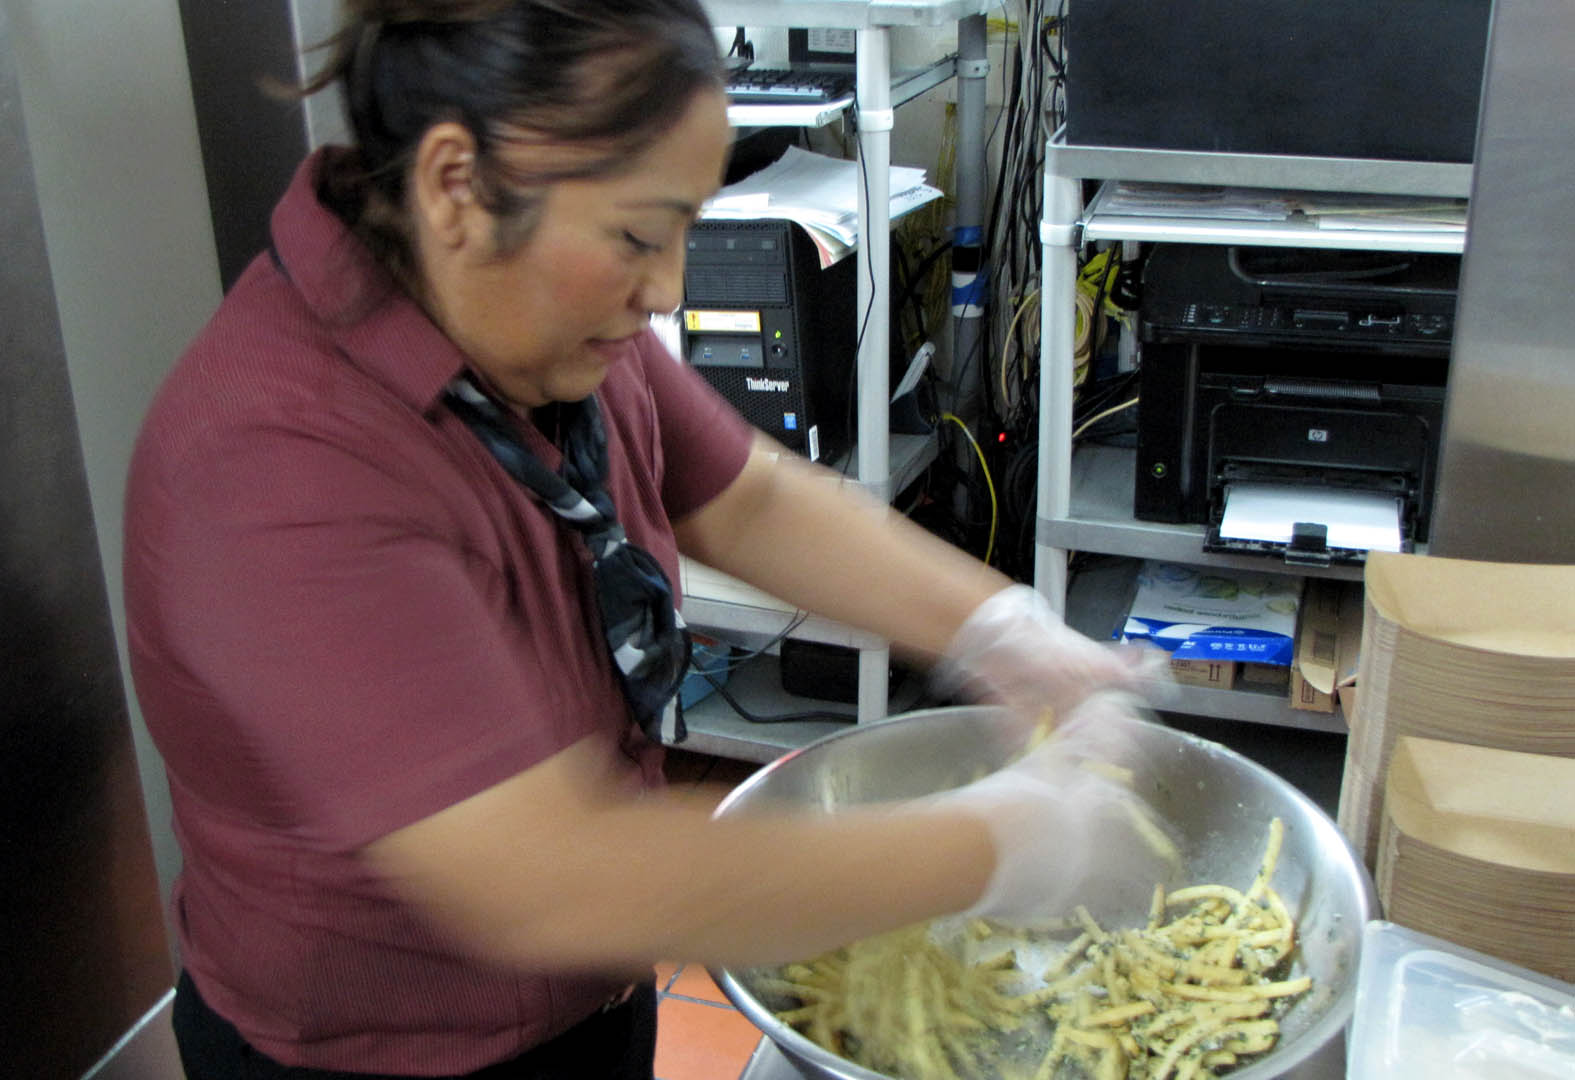 Dining profile: Gilroy garlic fries are proving to be a big hit at Bay Area McDonald's